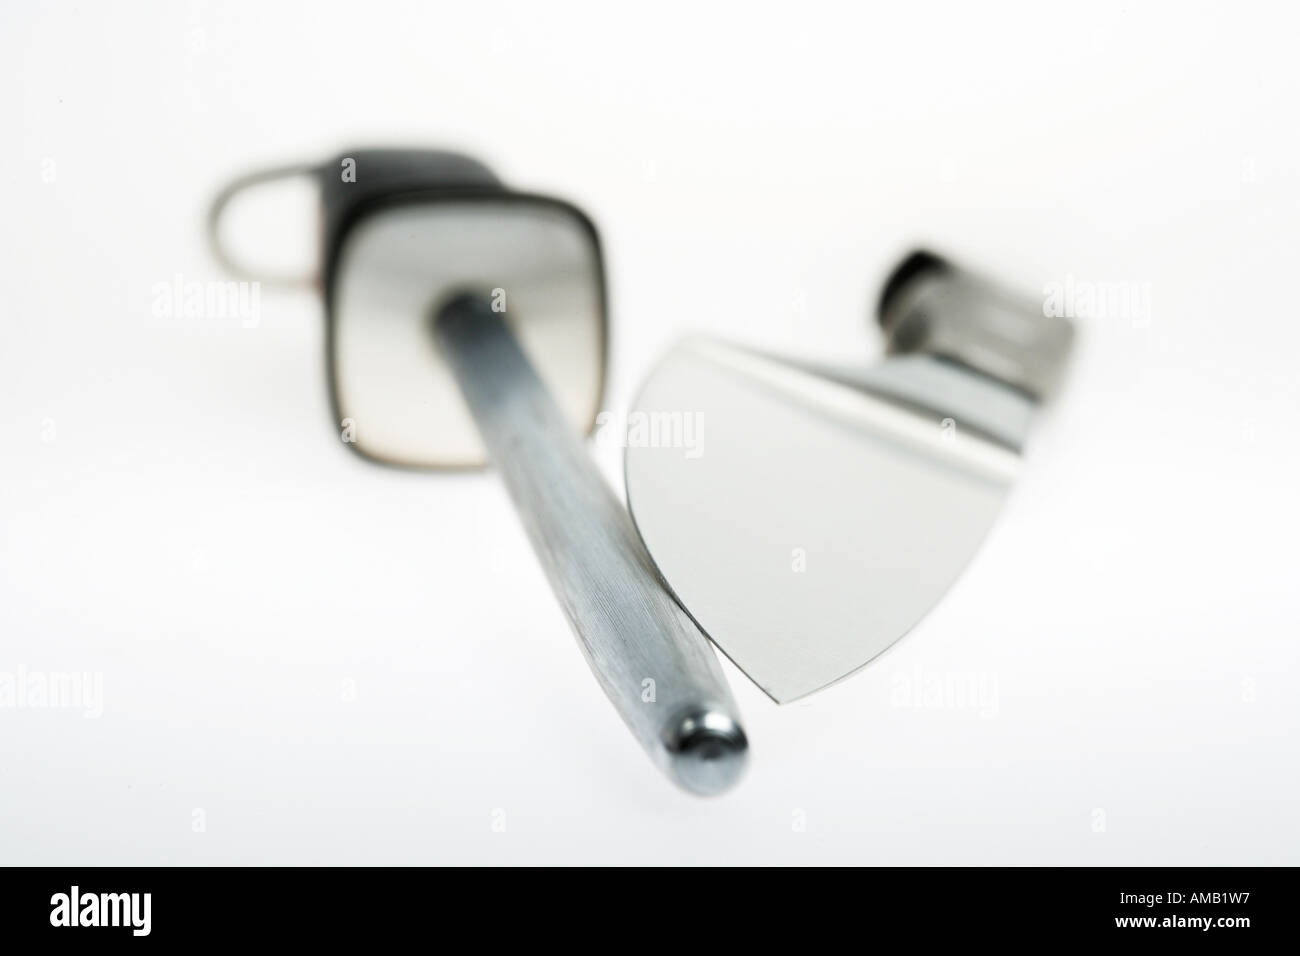 DEU, Germany : Steel, for sharpening of Cooking Knifes - Stock Image